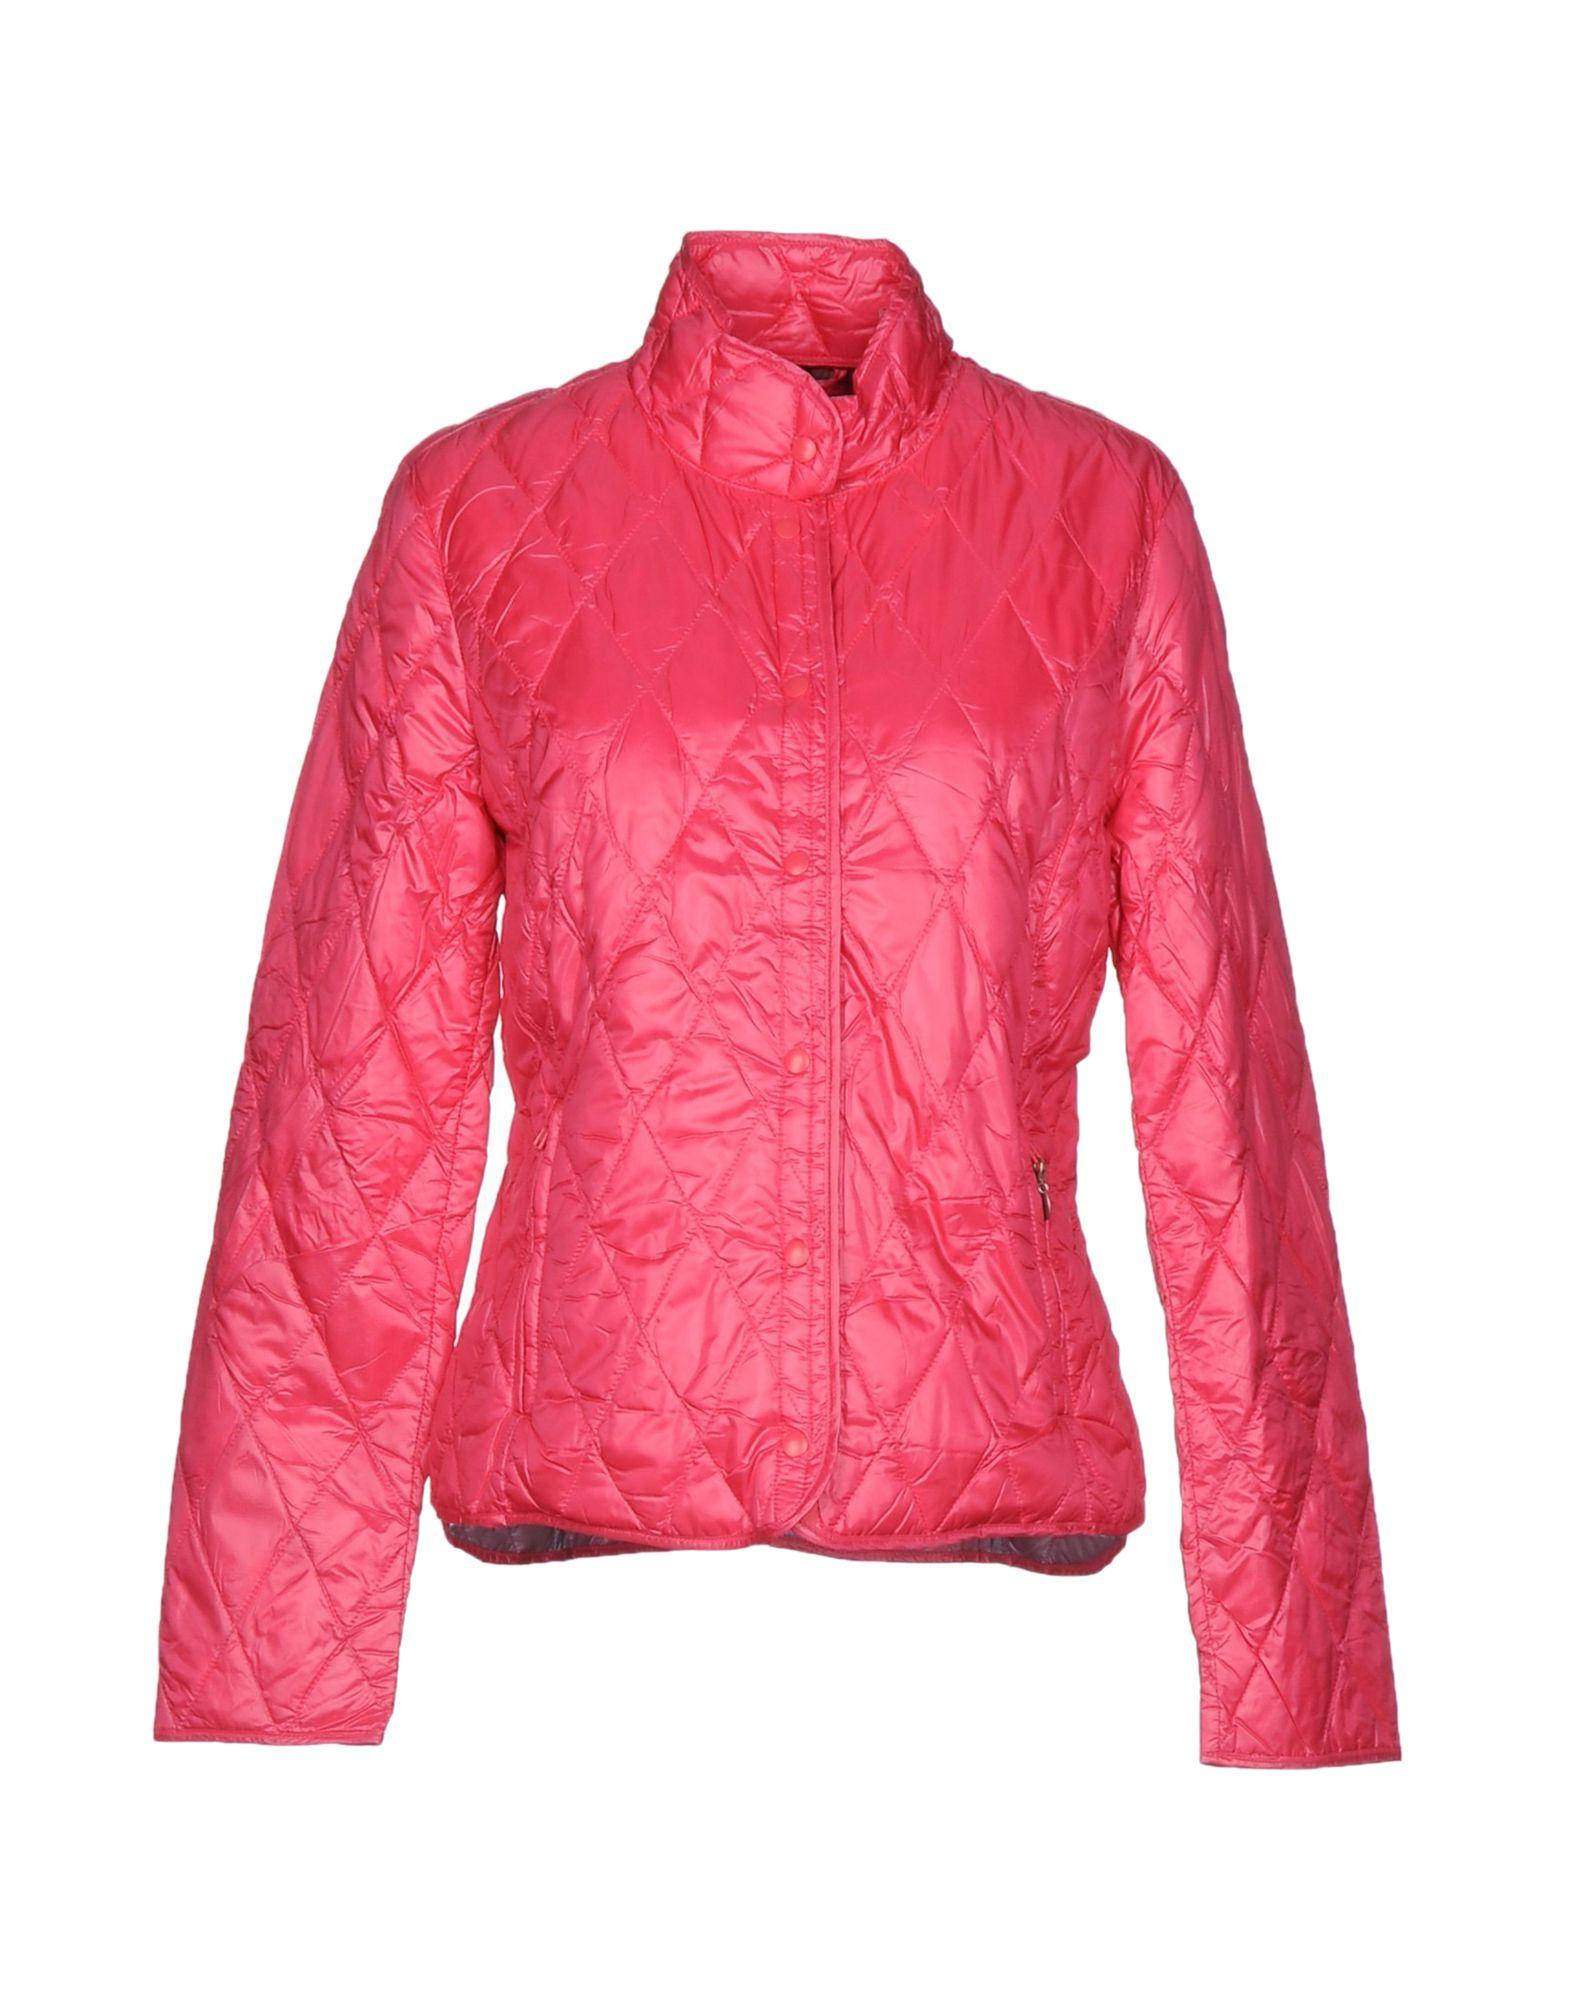 Lyst Bpd Be Proud Of This Dress Down Jacket